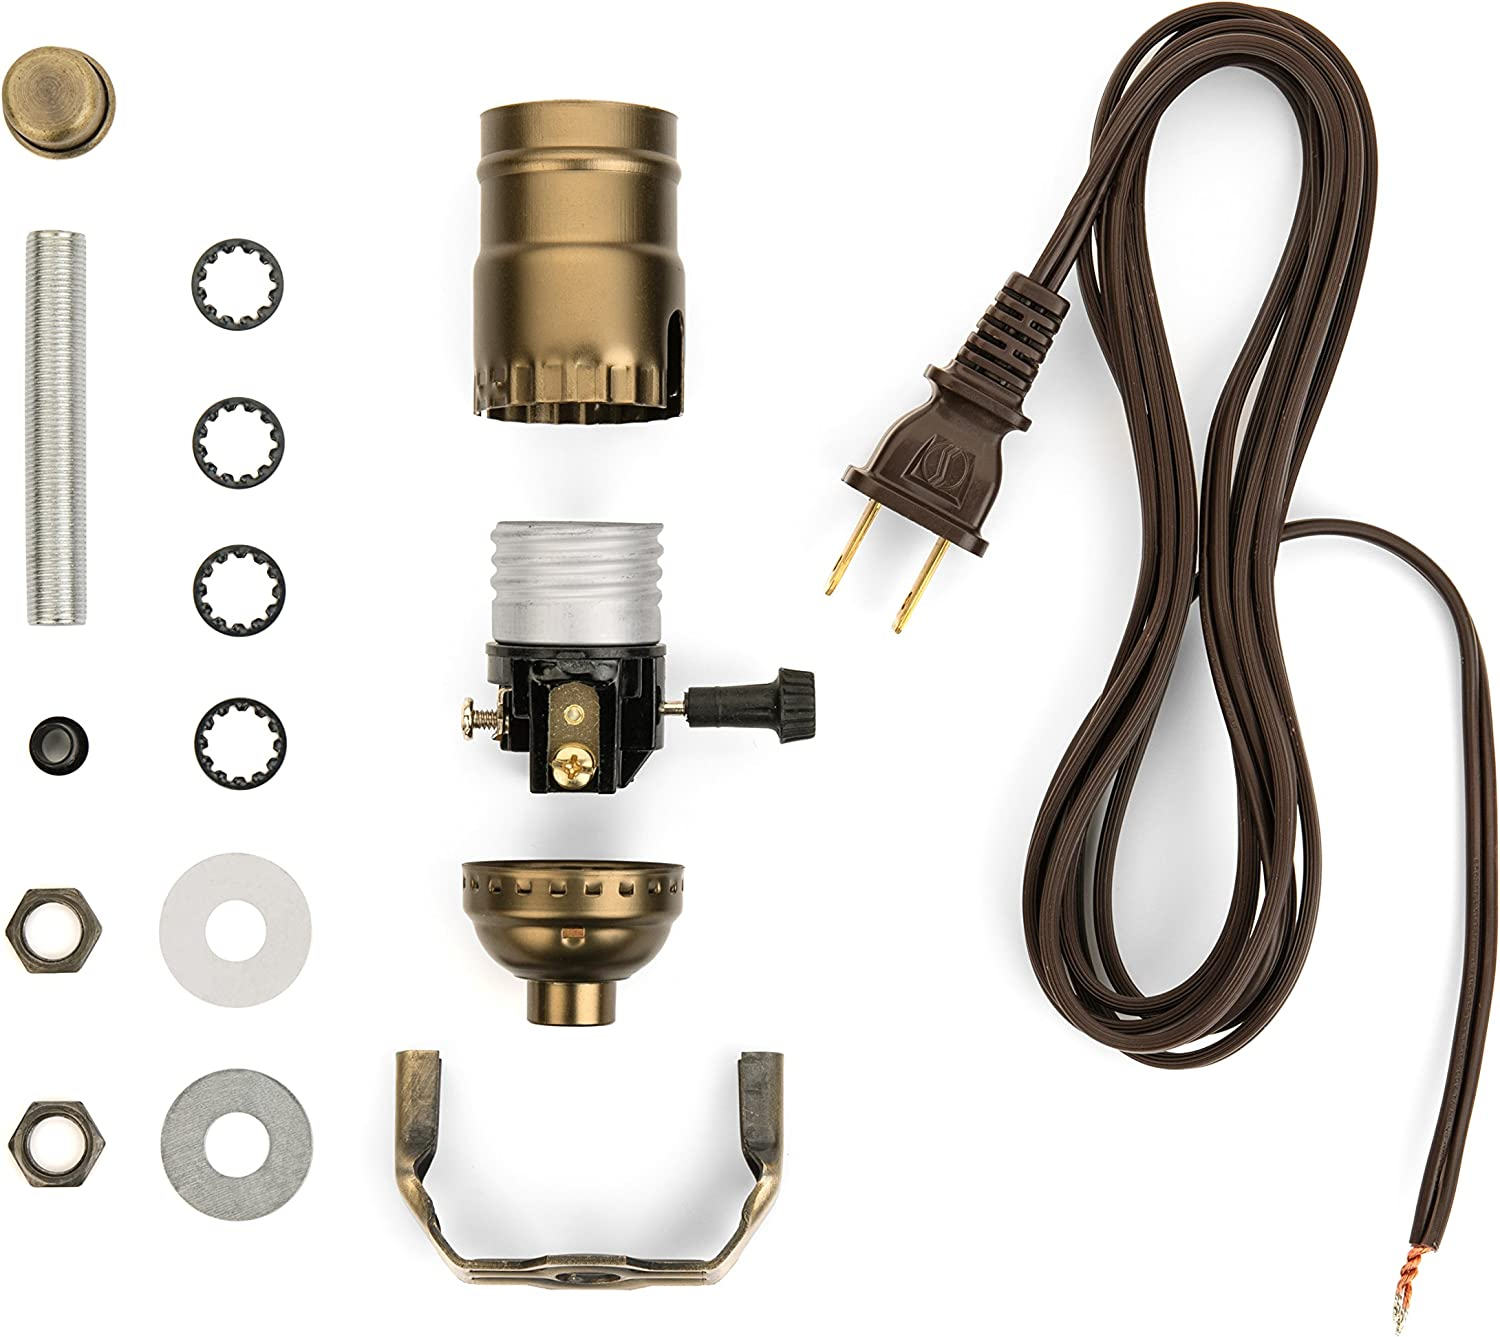 i like that lamp base socket kit electrical wiring set for making,  repairing & repurposing lamps antique brass socket with a long brown cord -  - amazon.com  amazon.com